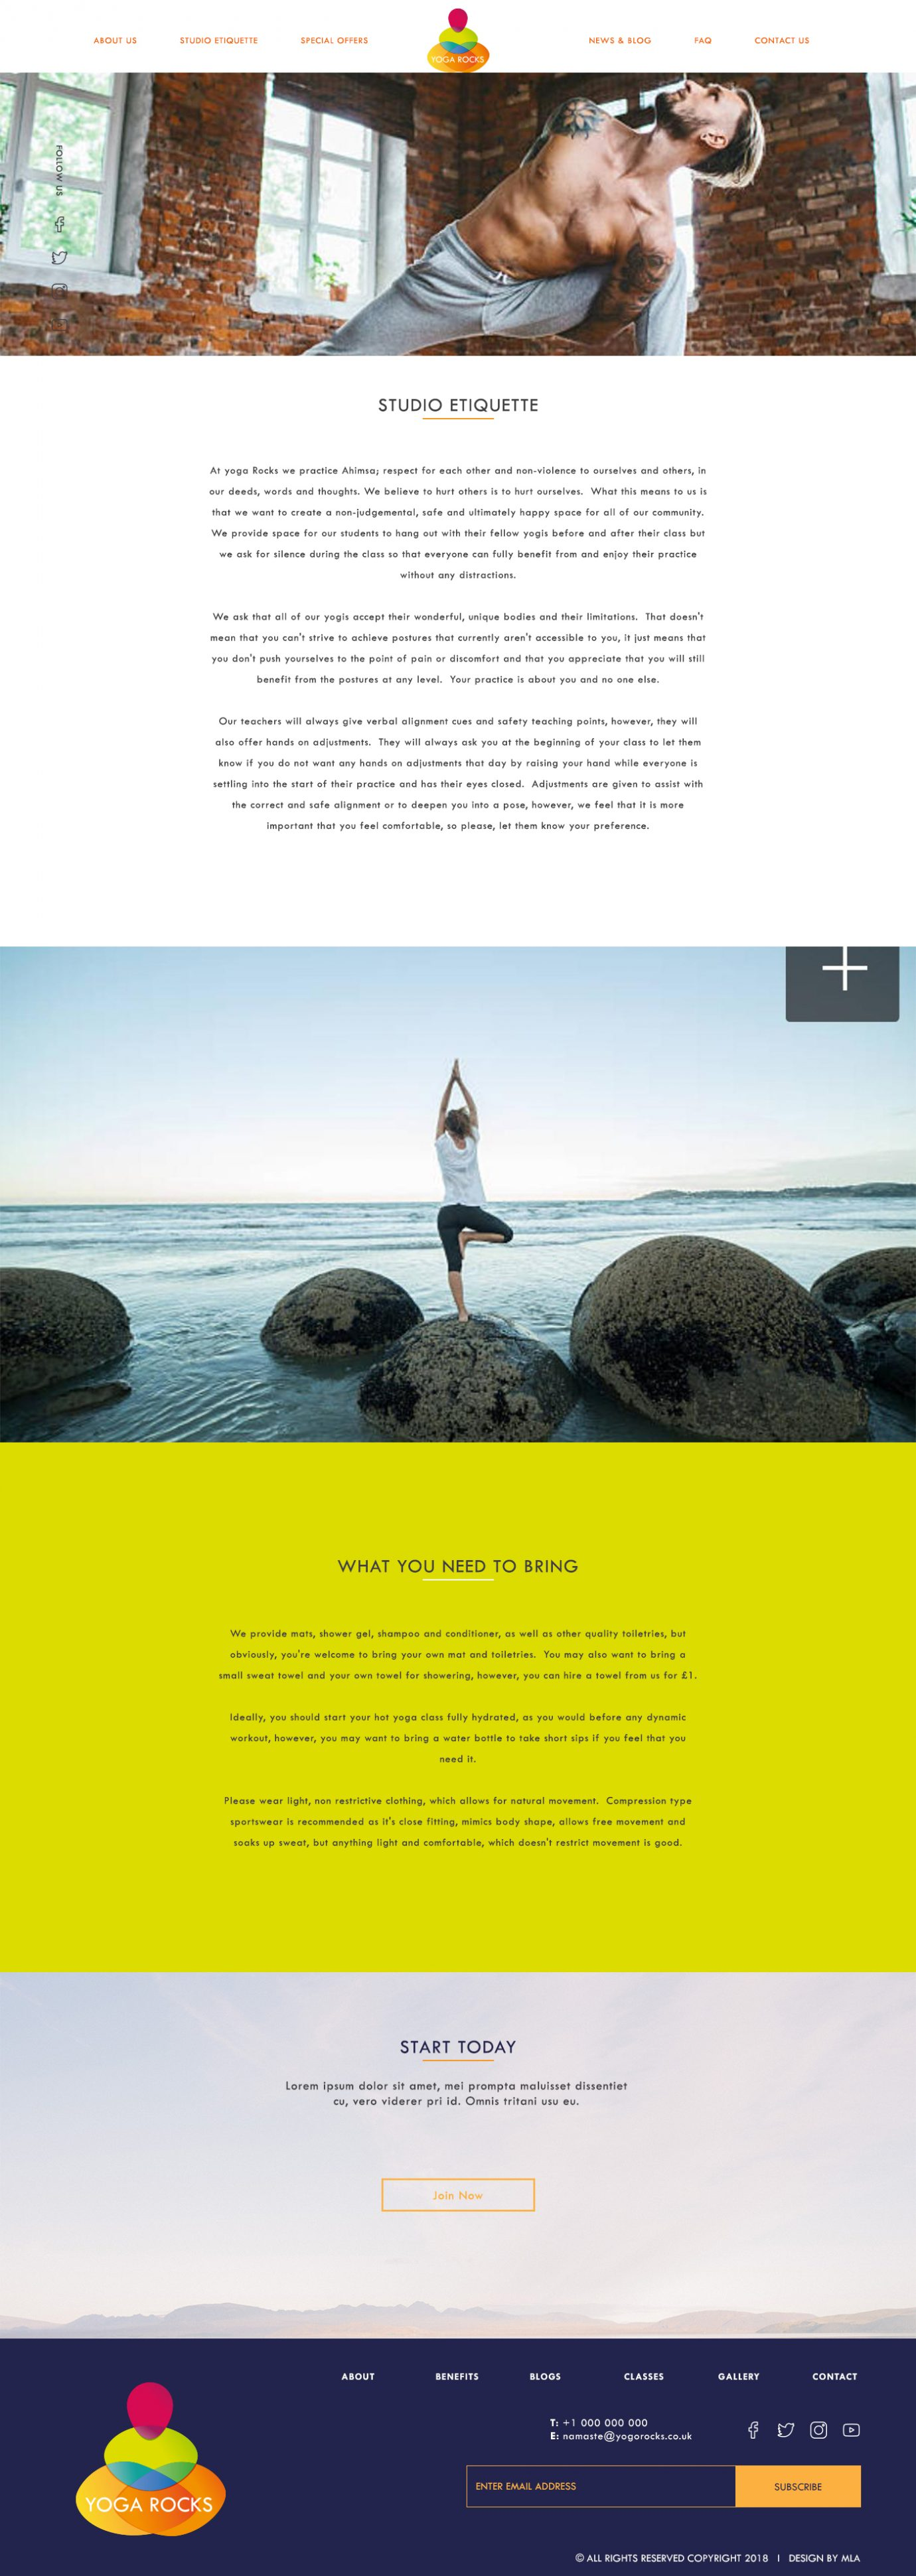 Yoga Rocks studio etiquette page design - London Web Design - web design agency london